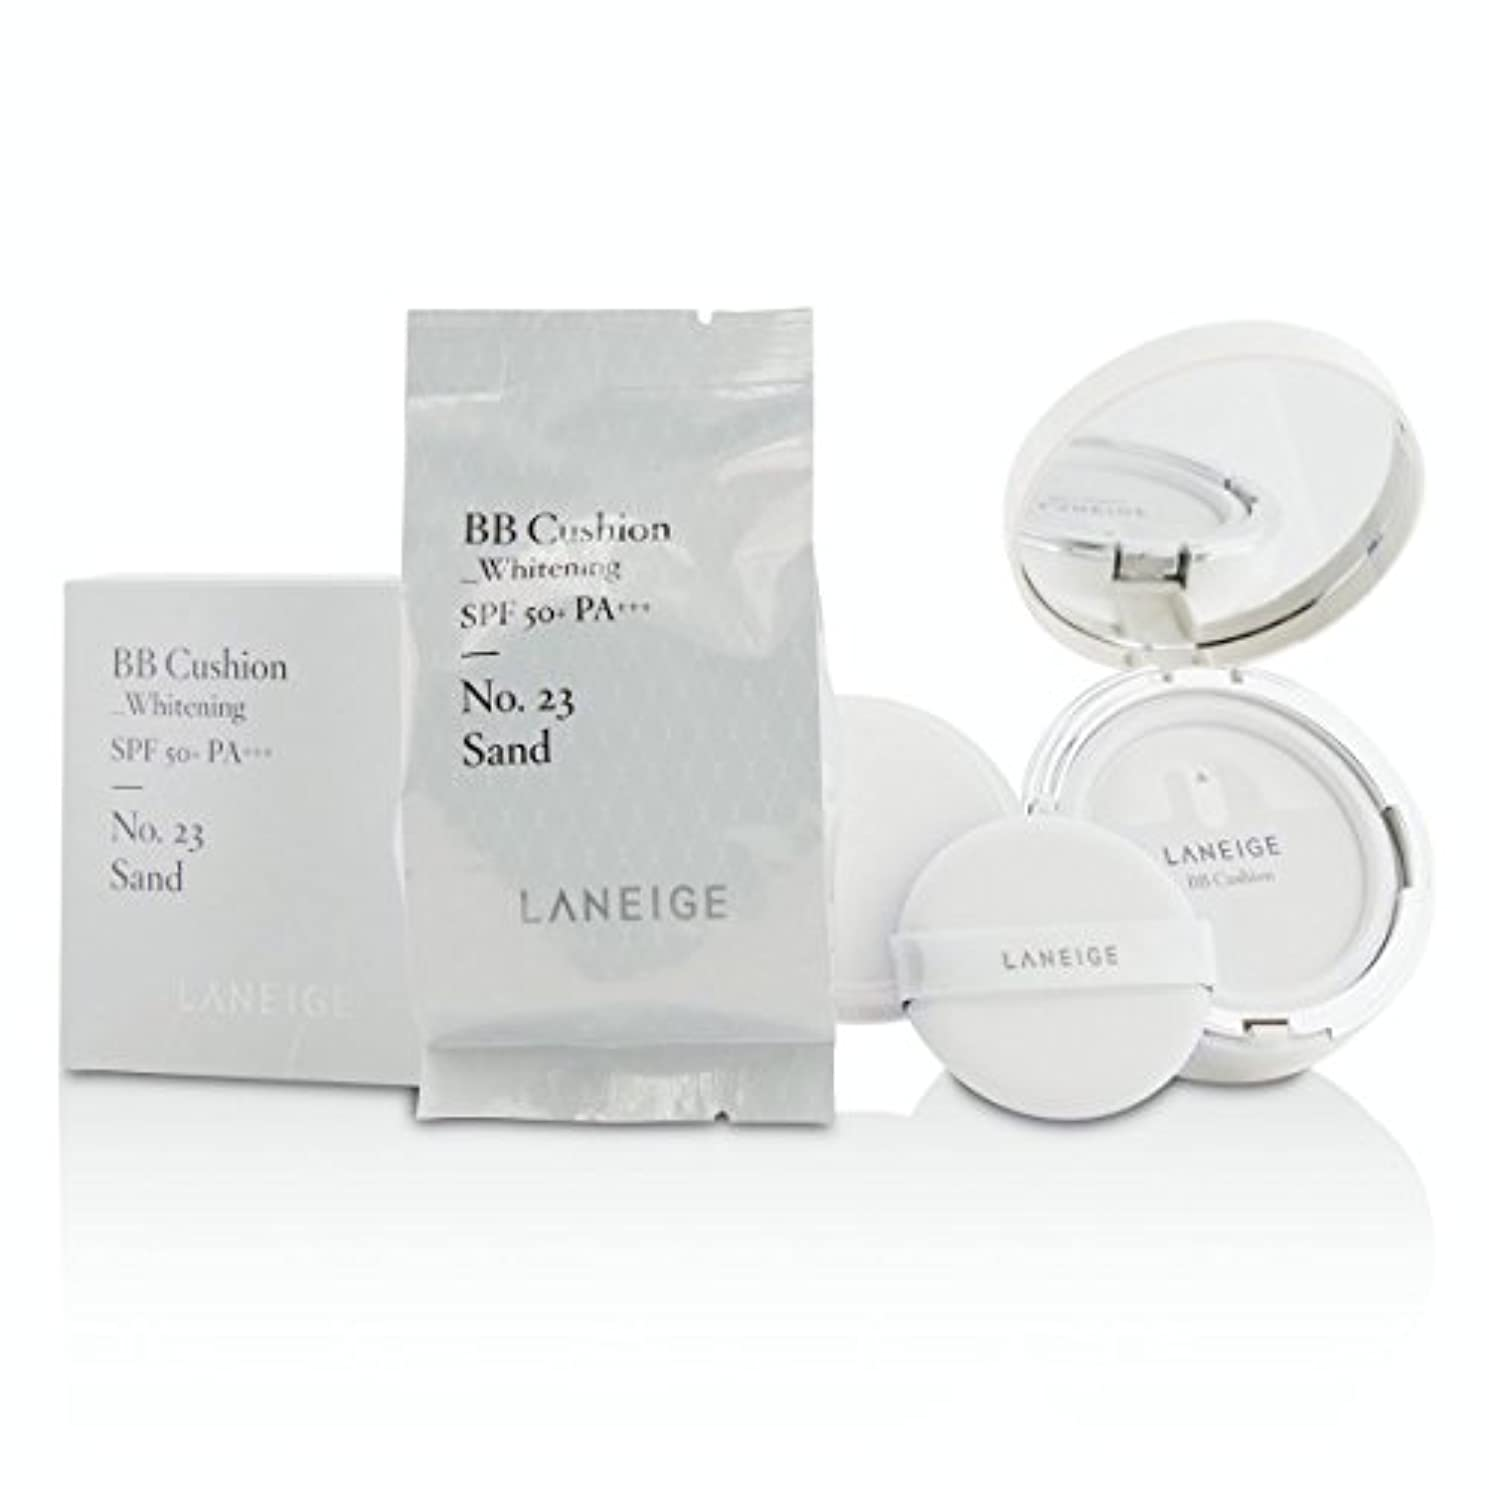 容器困惑したごめんなさい[Laneige] BB Cushion Foundation (Whitening) SPF 50 With Extra Refill - # No. 23 Sand 2x15g/0.5oz